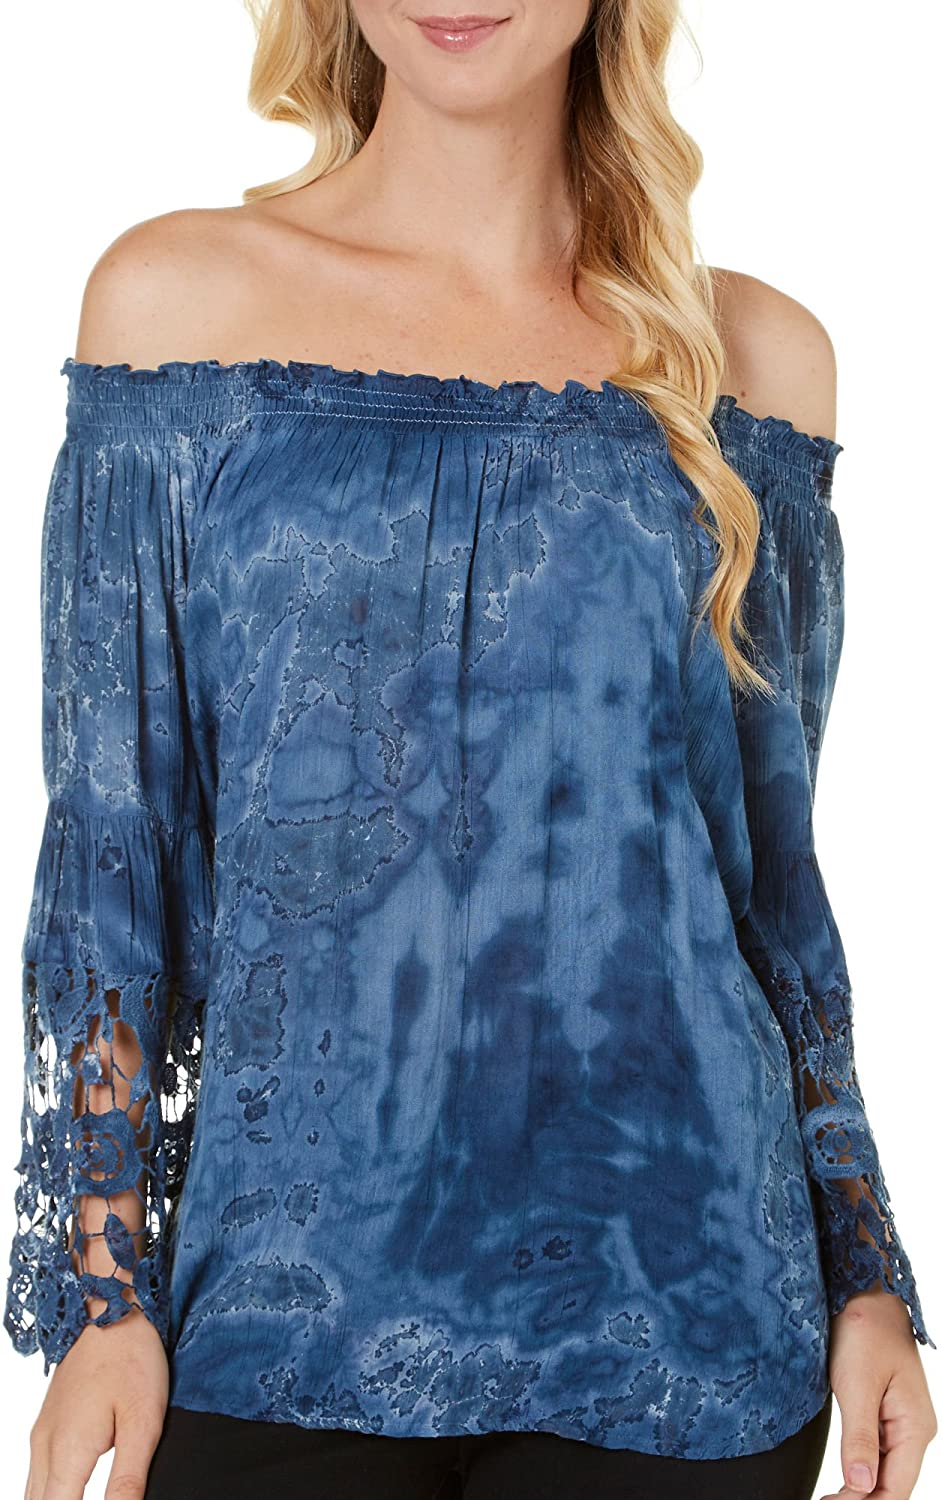 Women's Tunic Top - Tie Dye Lace Flared Sleeve Peasant Shirt